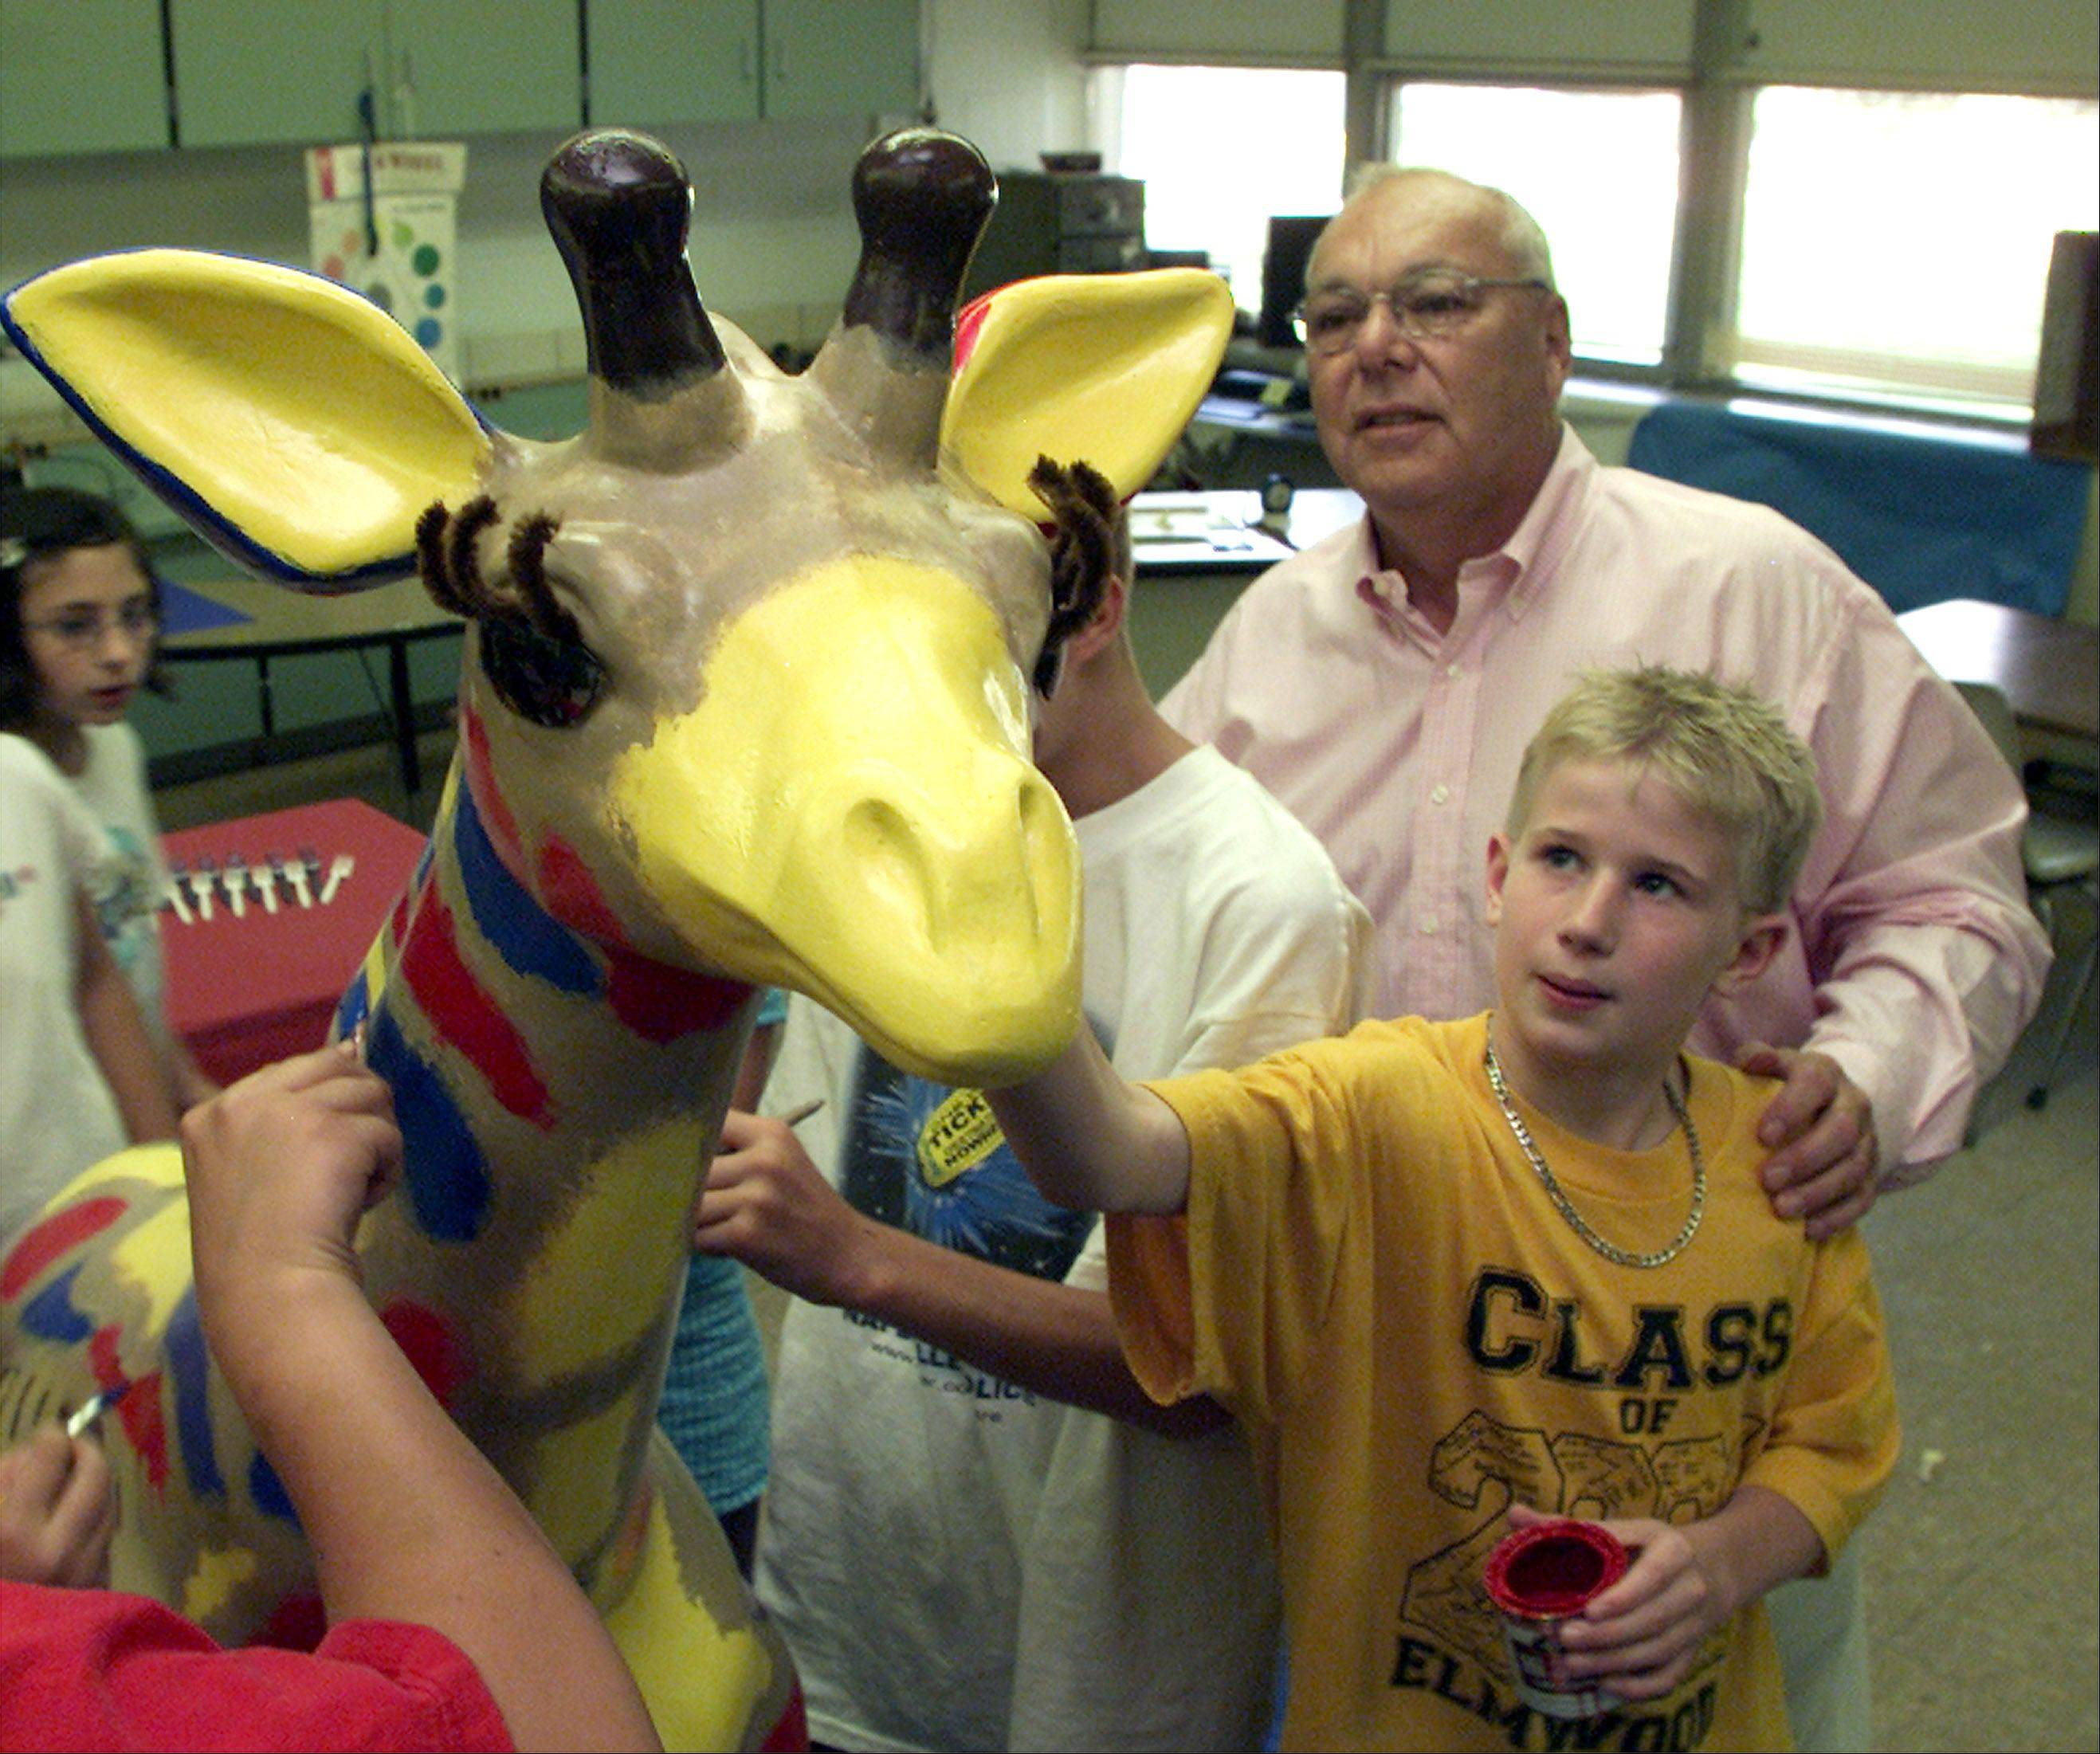 Prominent Naperville attorney Bill Brestal was active in civic affairs. Here, he works with children decorating a giraffe -- part of a United Way fundraising effort.